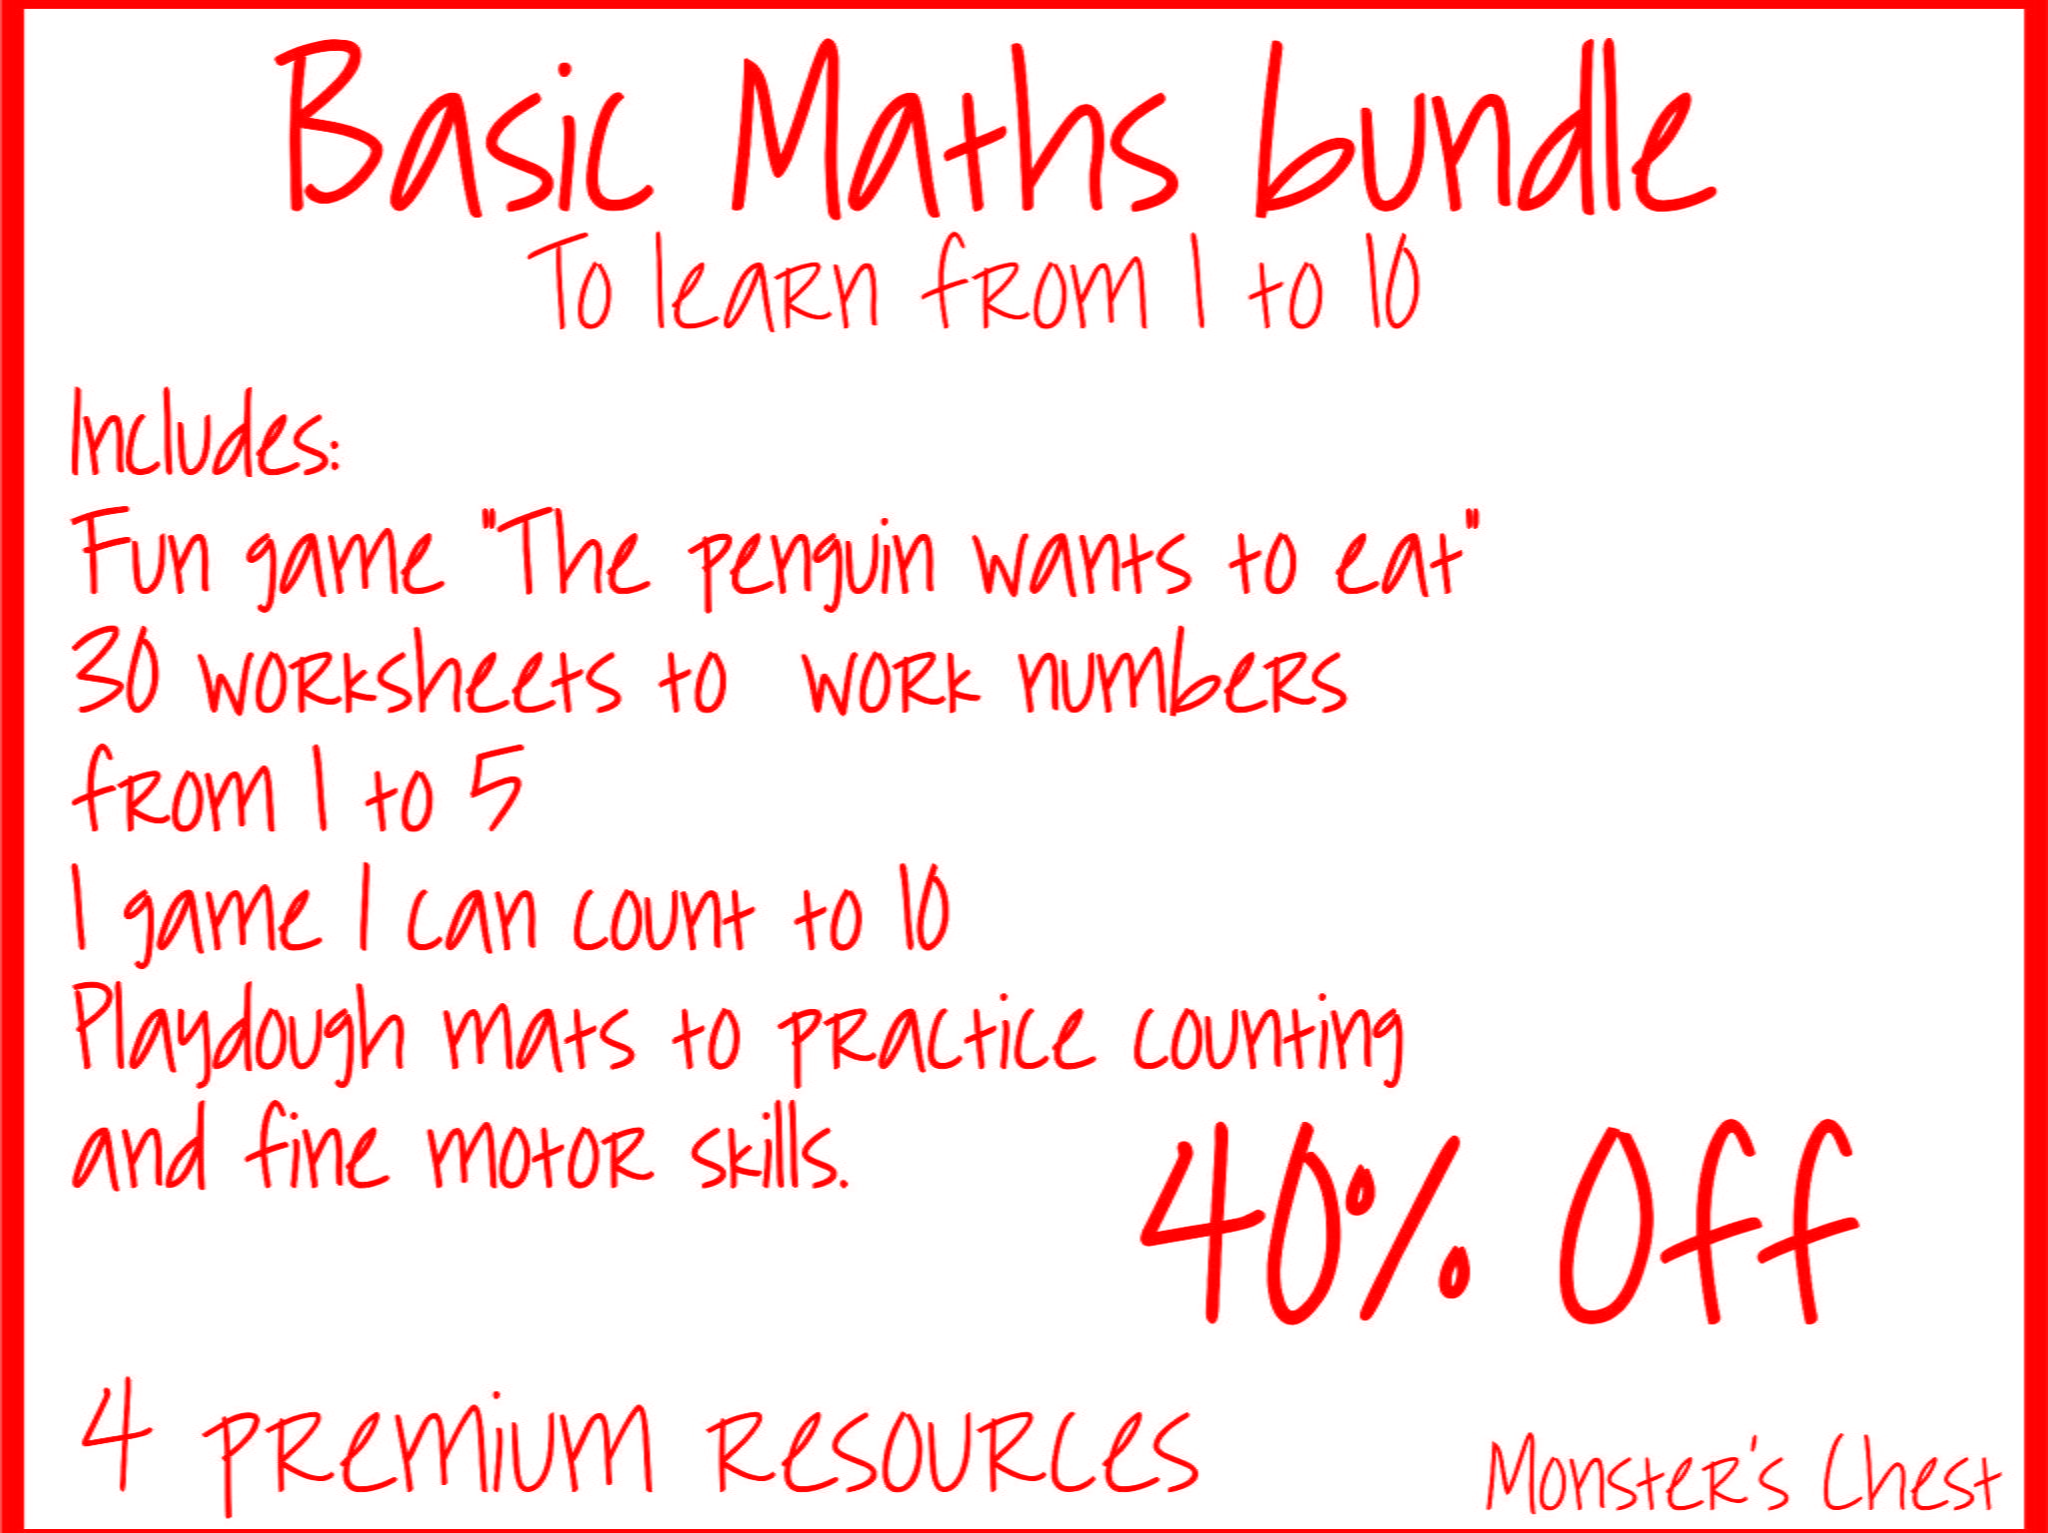 Basic Maths Bundle